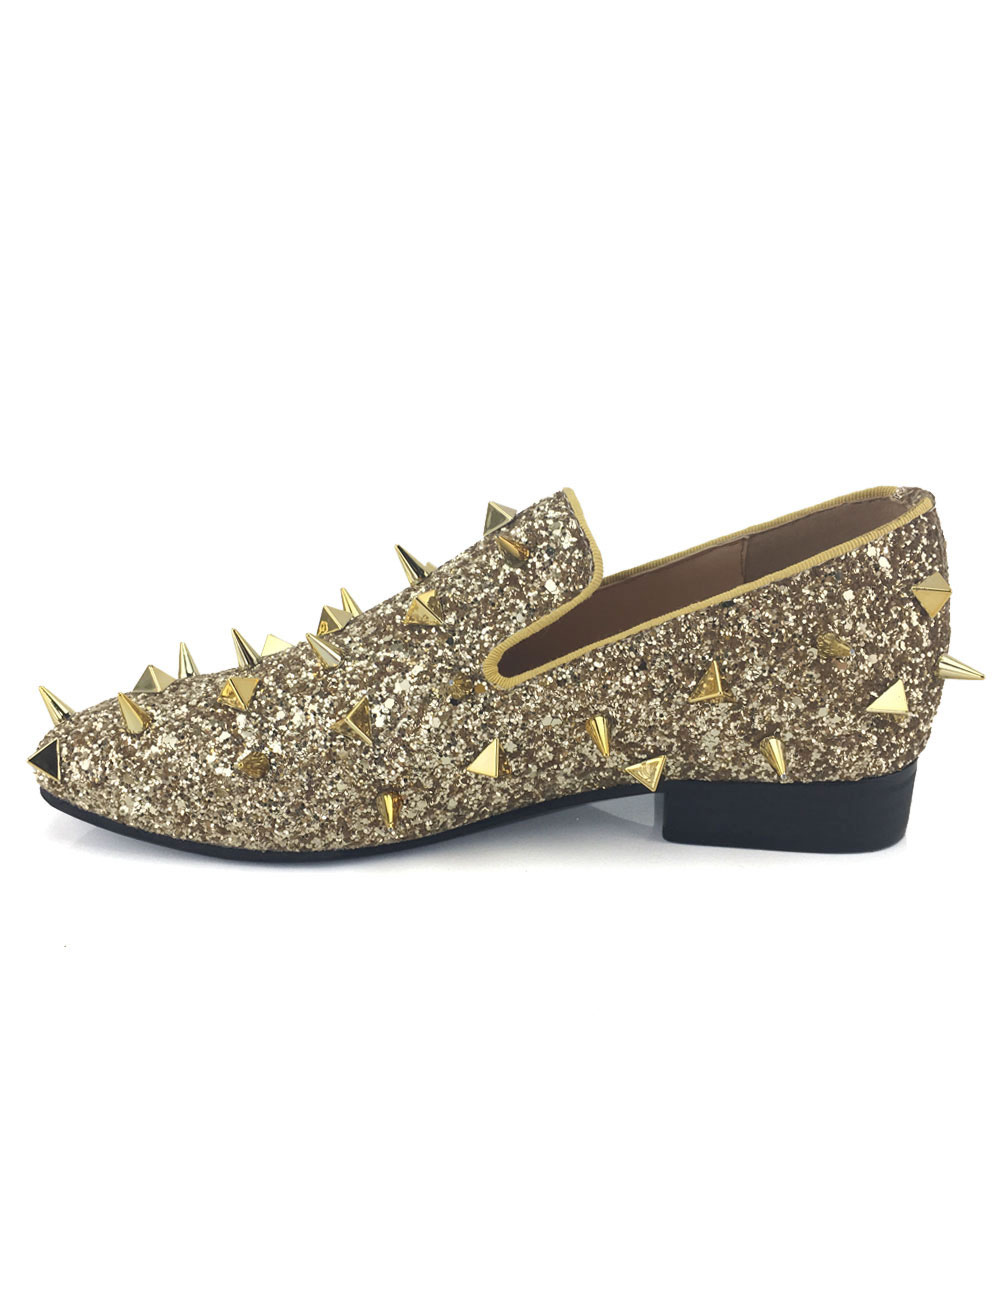 Gold Sequined Men Loafers Metallic Slip On Spike Shoes Party Shoes